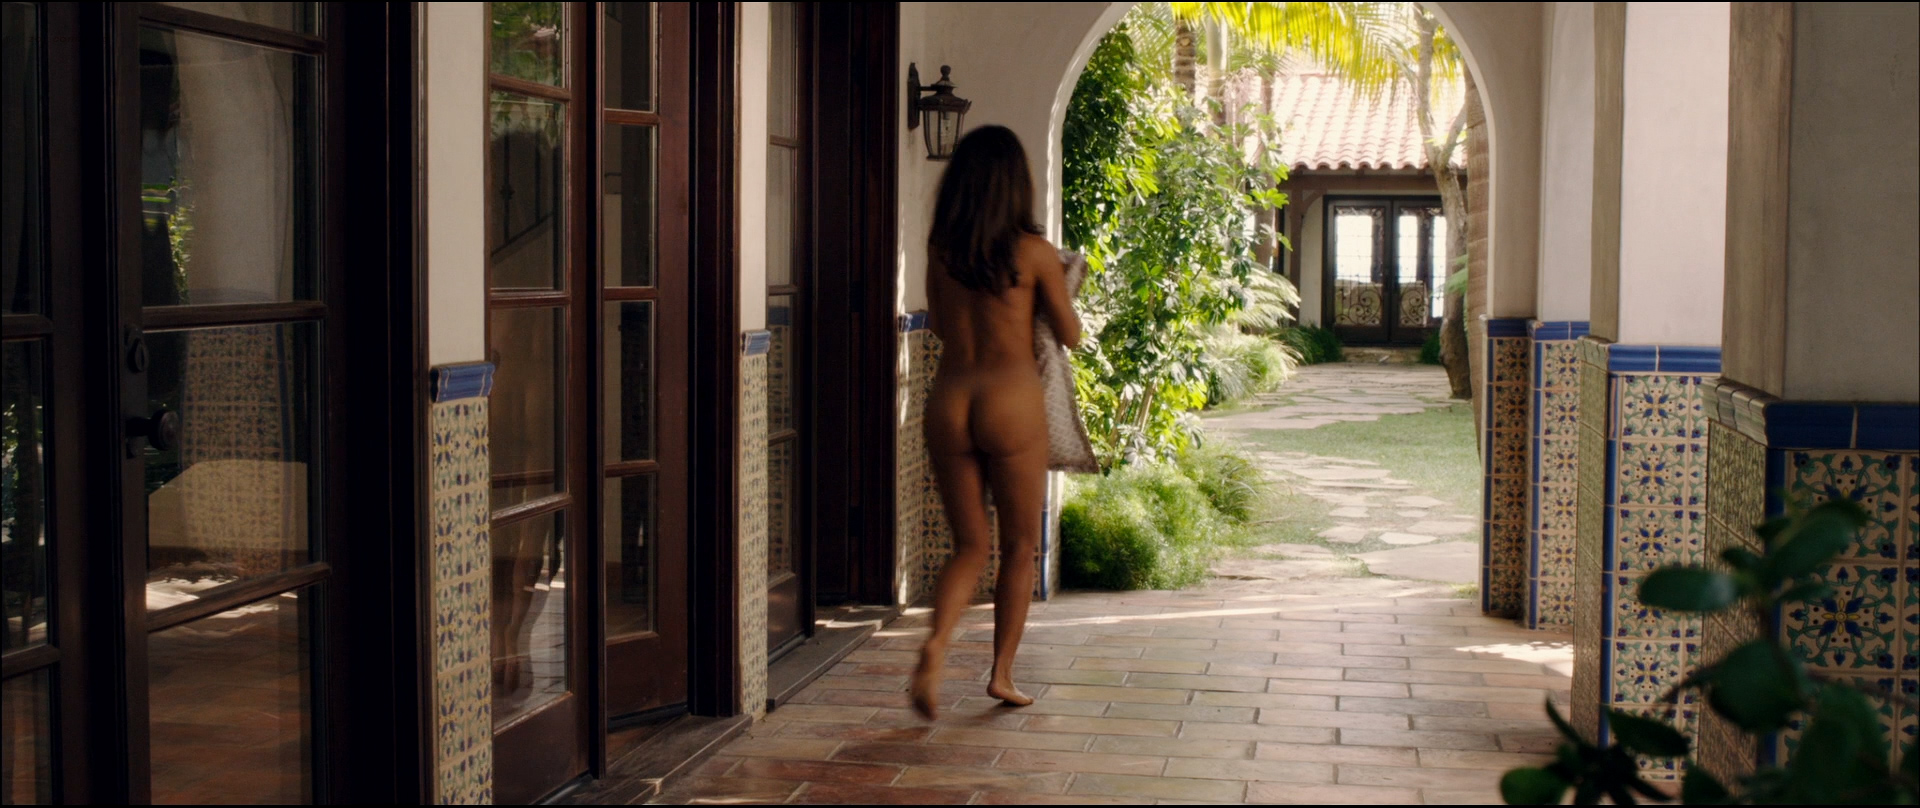 Salma Hayek nude butt Jessica Alba hot bikini and Lindsey Sporrer nude butt - Some Kind Of Beautiful (2014) hd1080p BluRay (3)